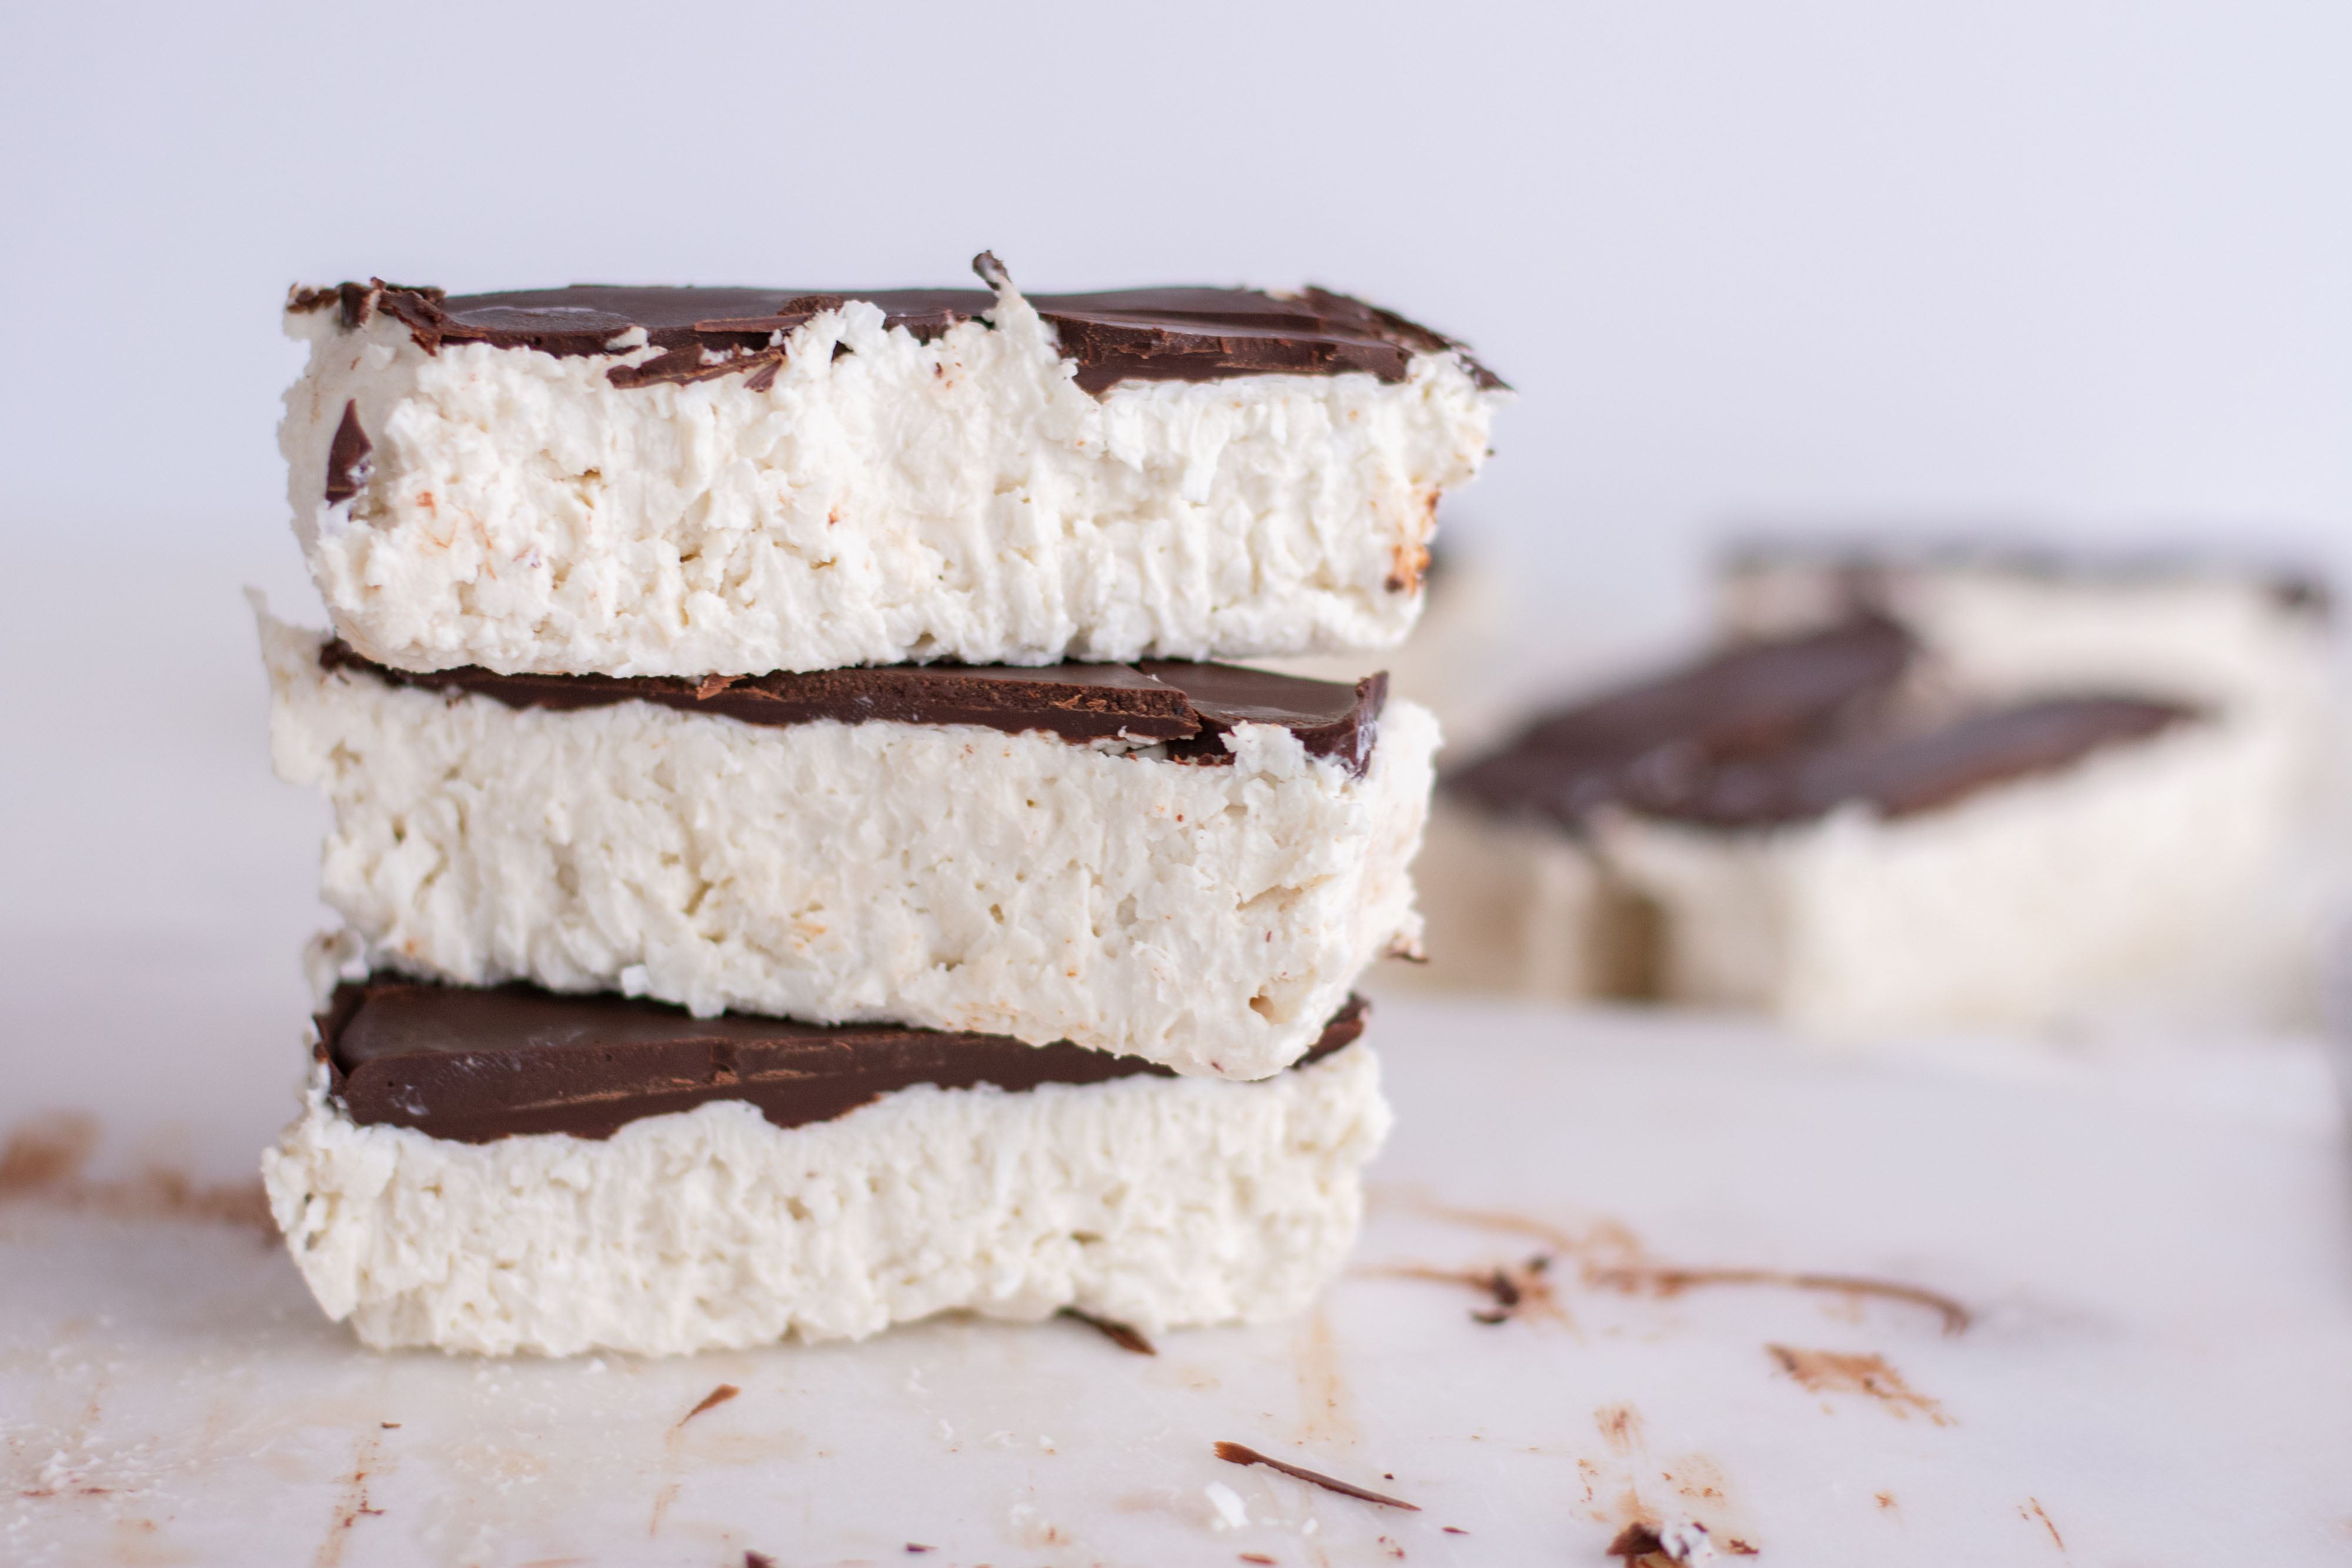 White coconut bars with a chocolate layer on top. Staked on top of each other on a white surface